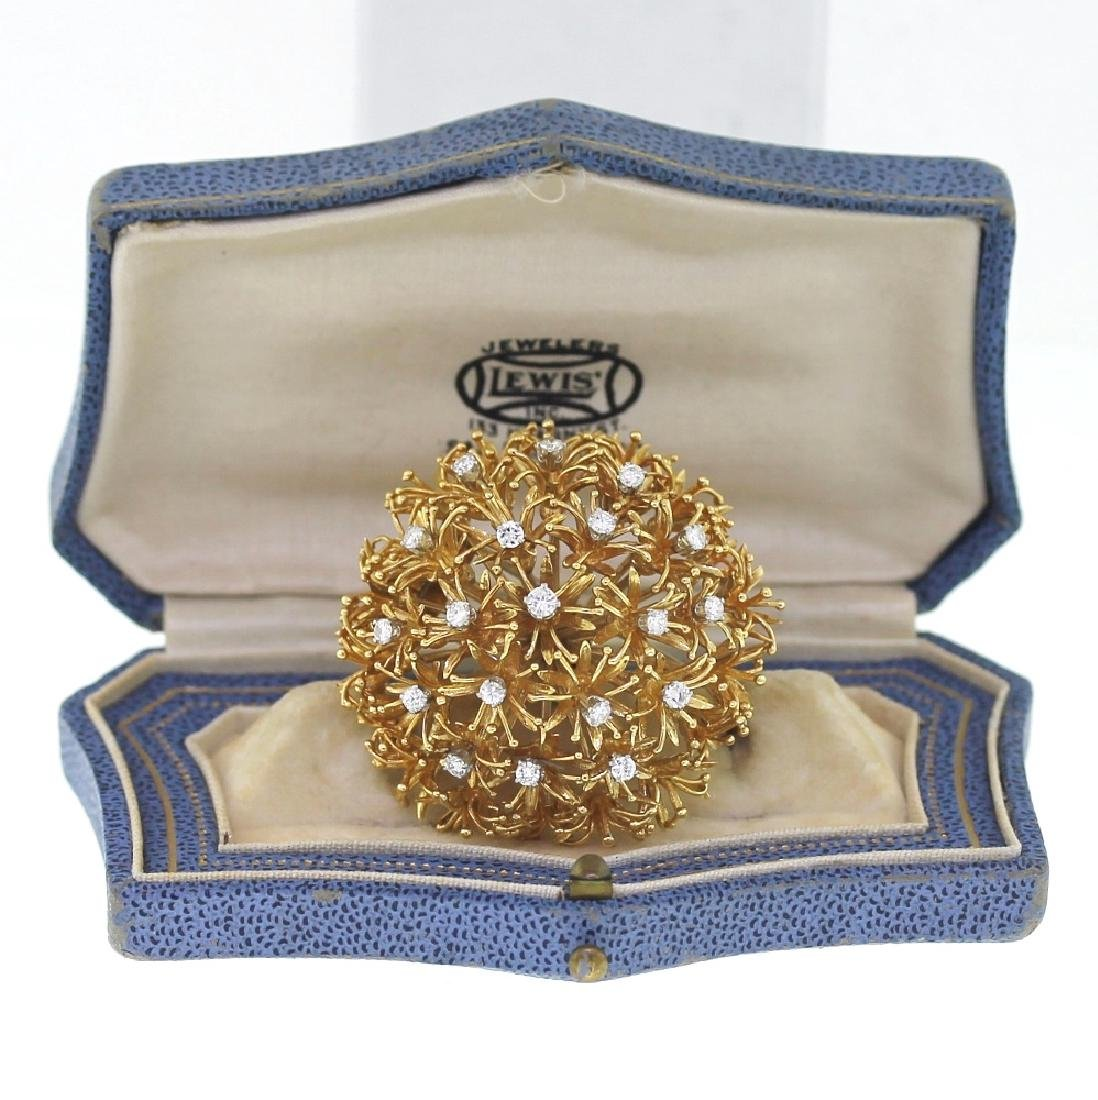 David Webb 1.70ctw Diamond & 18K Dandelion Brooch